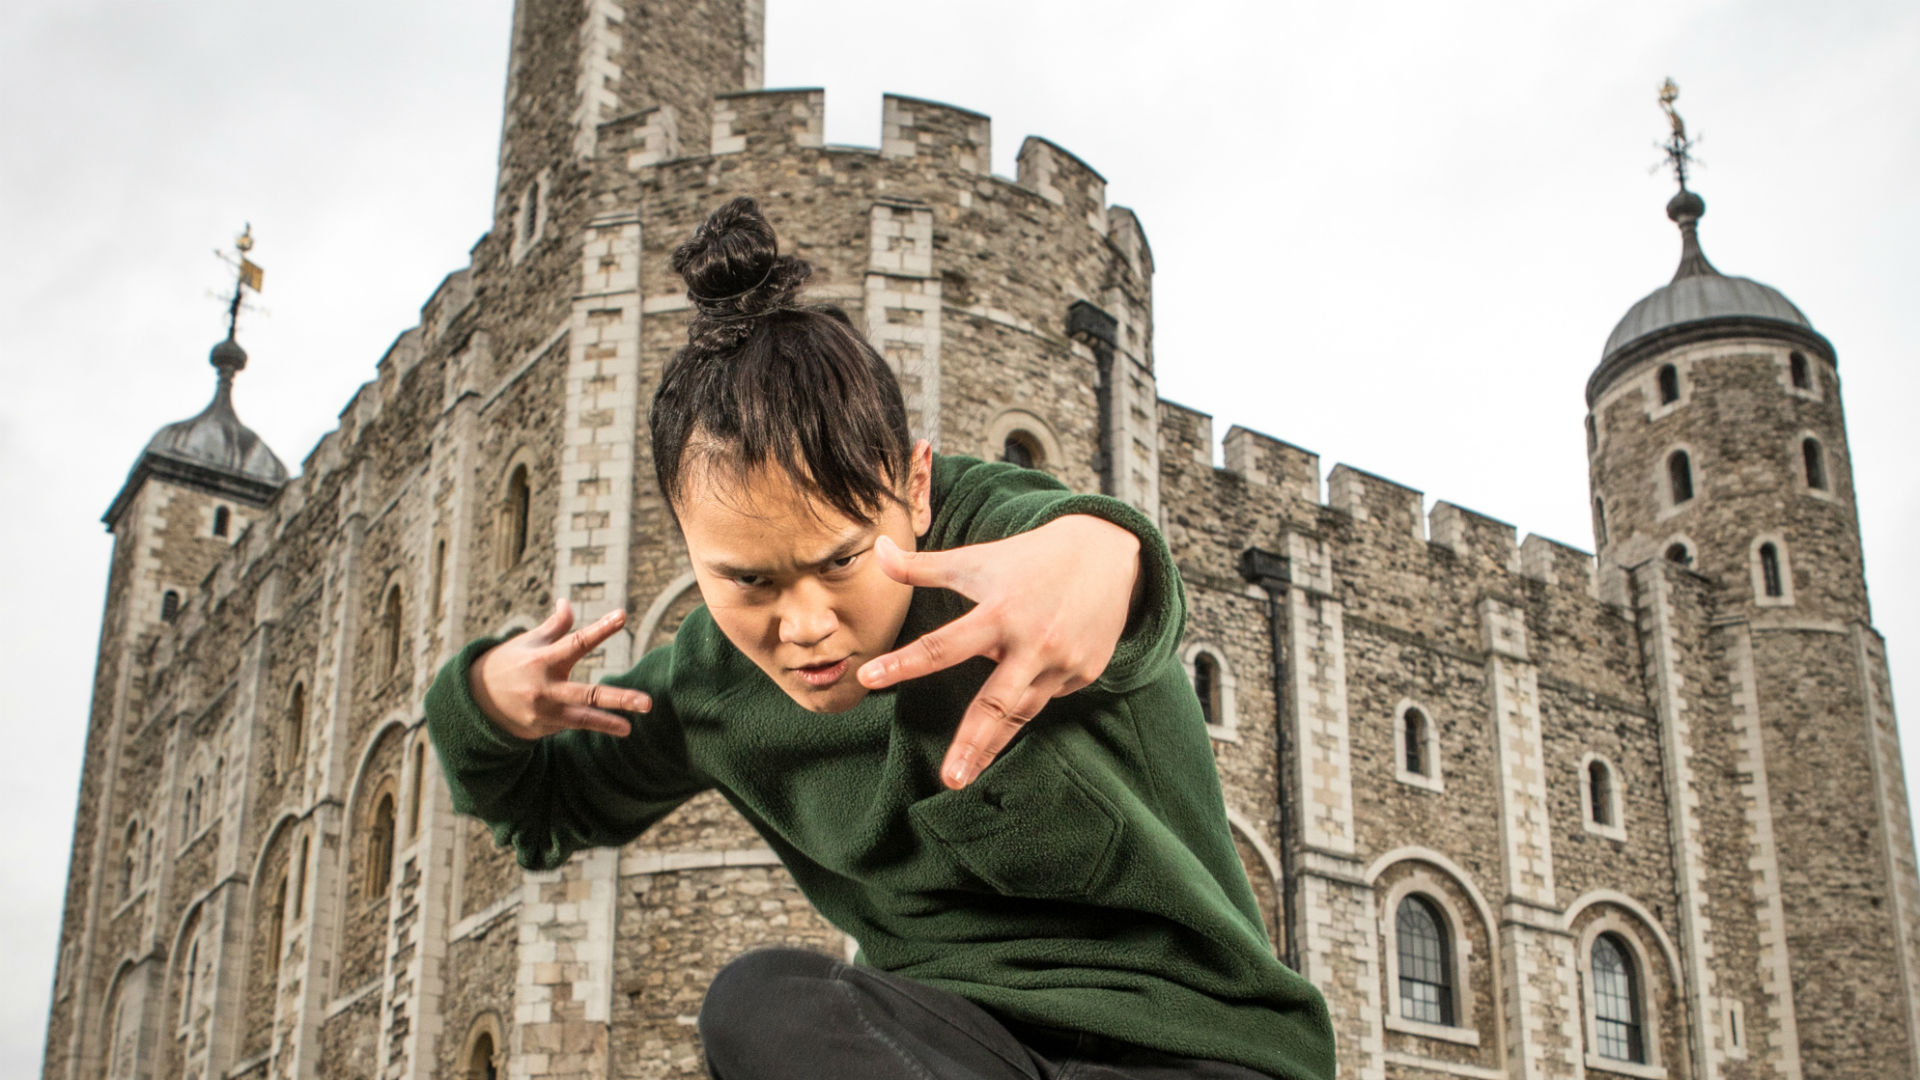 A performer dances outside of the Tower of London